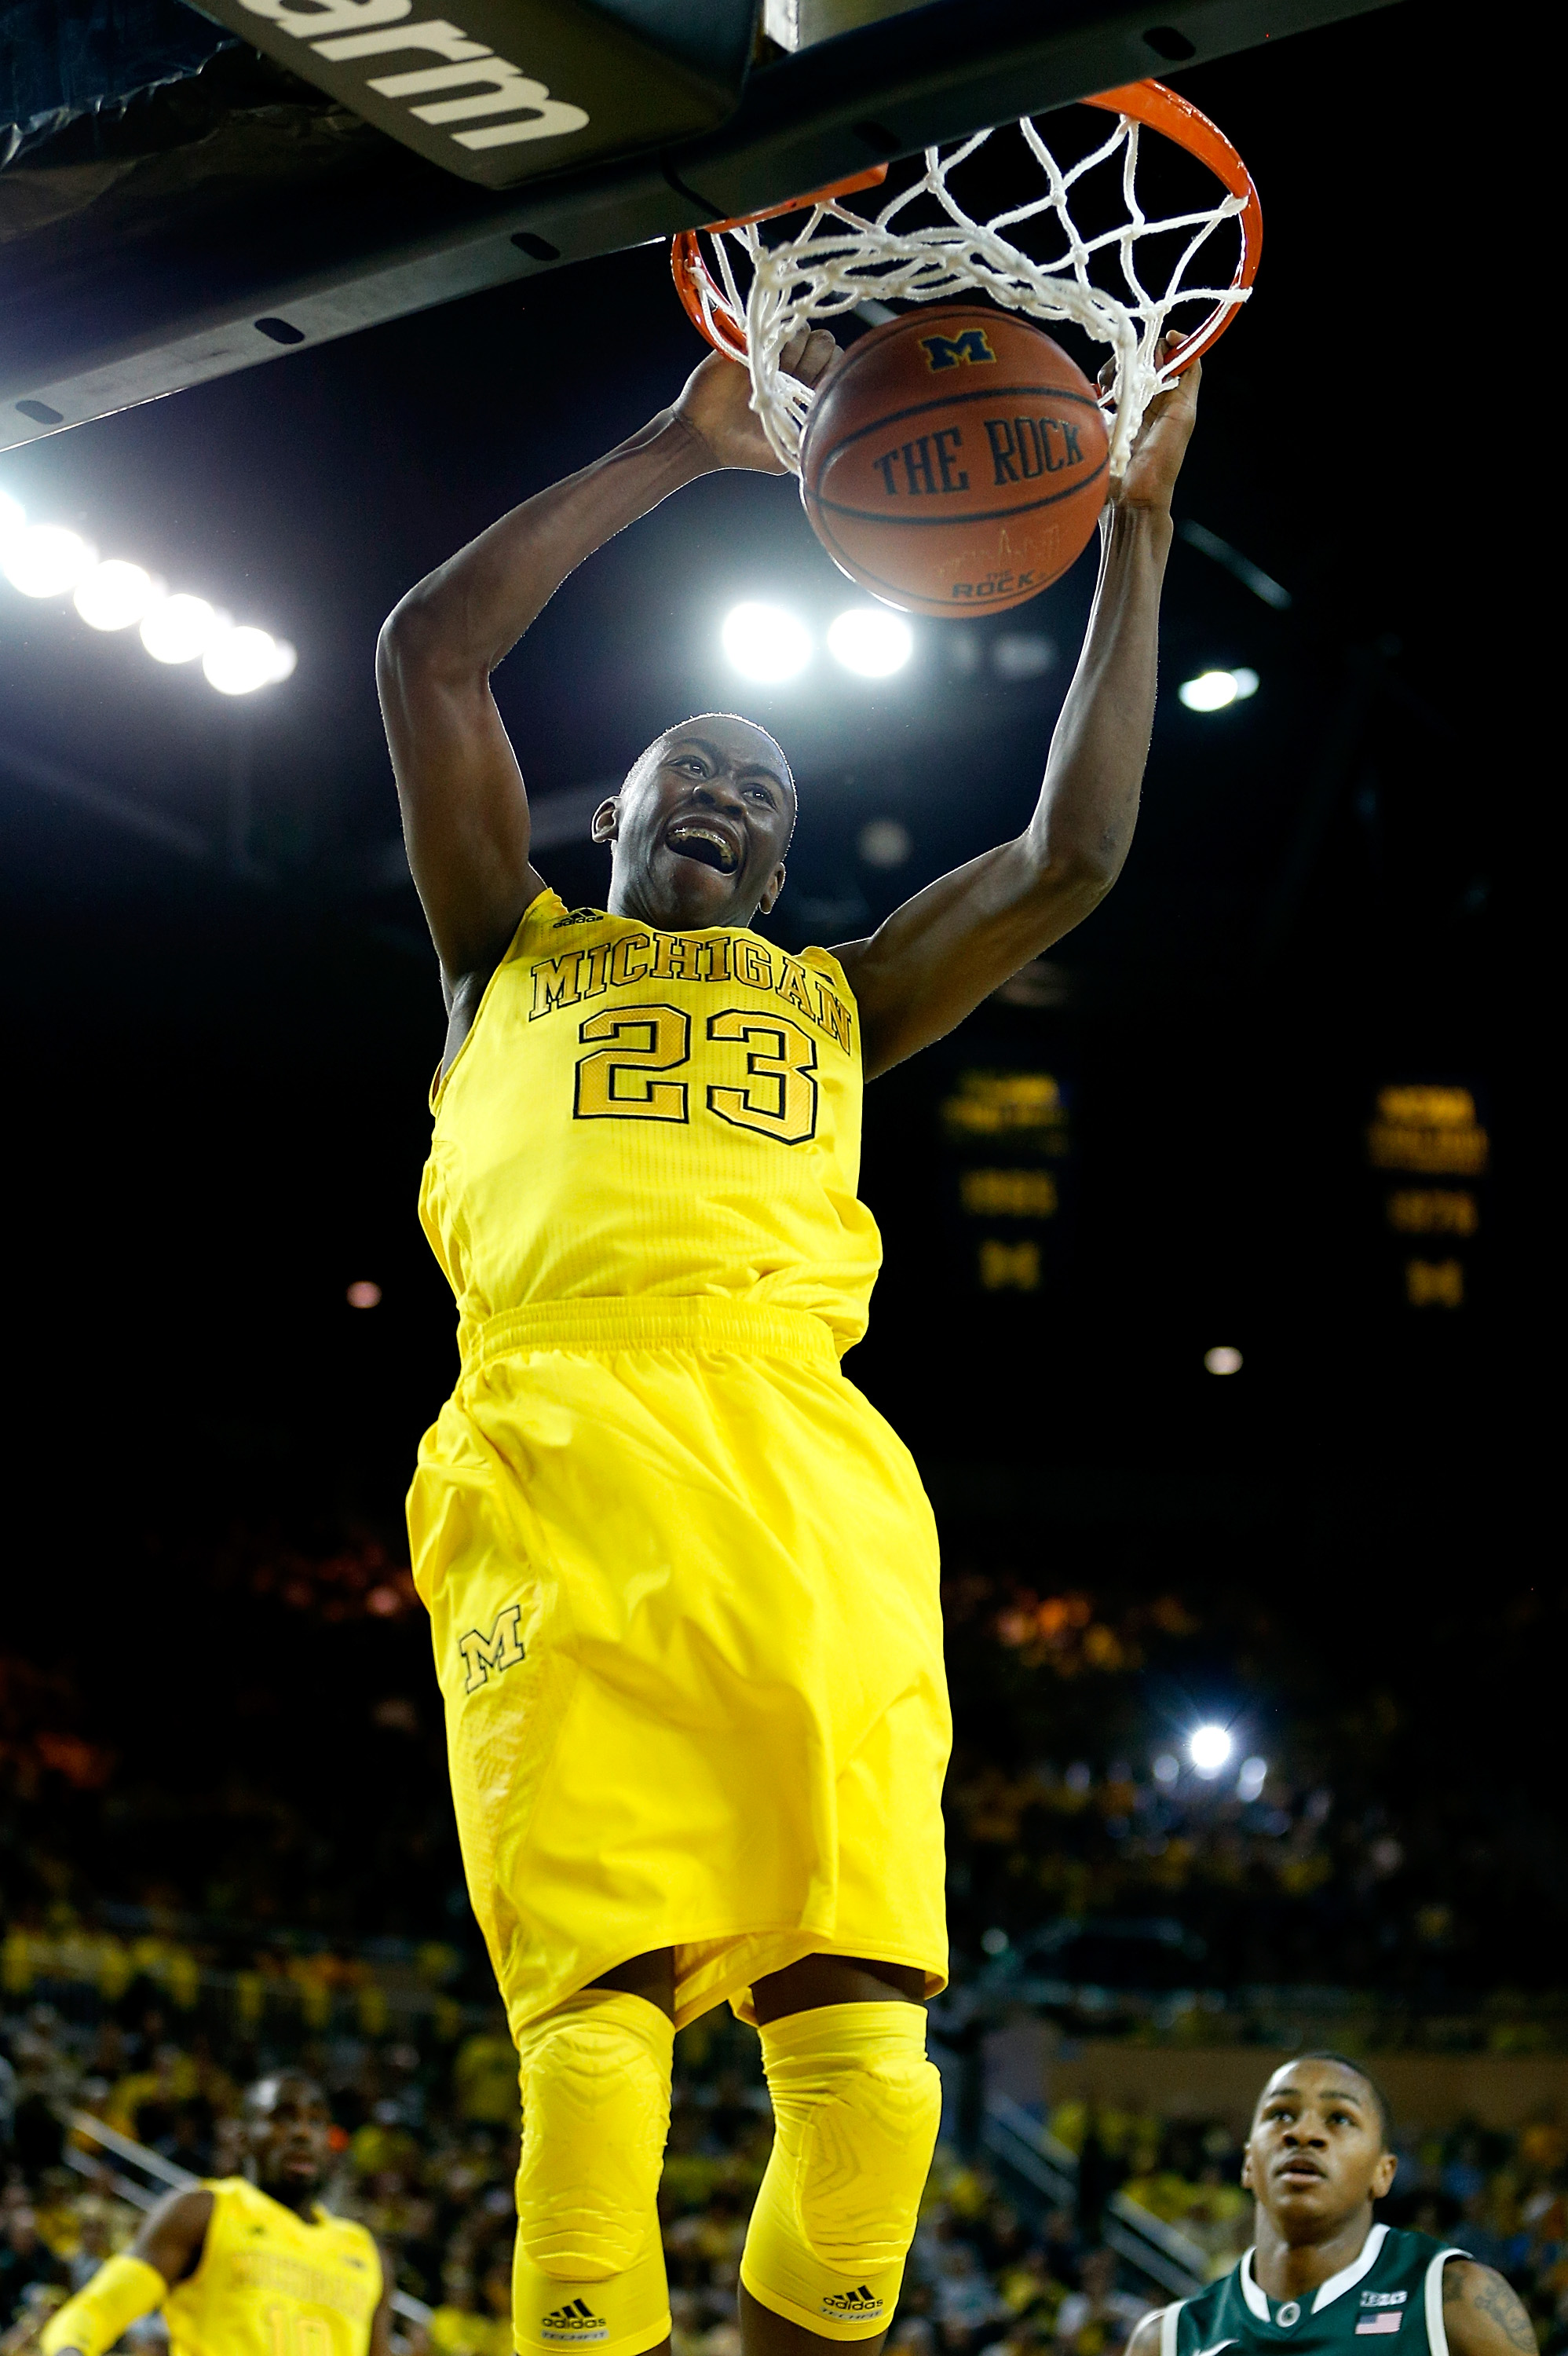 ANN ARBOR, MI - MARCH 03: Caris LeVert #23 of the Michigan Wolverines gets in for a first half dunk while playing the Michigan State Spartans at Crisler Center on March 3, 2013 in Ann Arbor, Michigan. (Photo by Gregory Shamus/Getty Images)